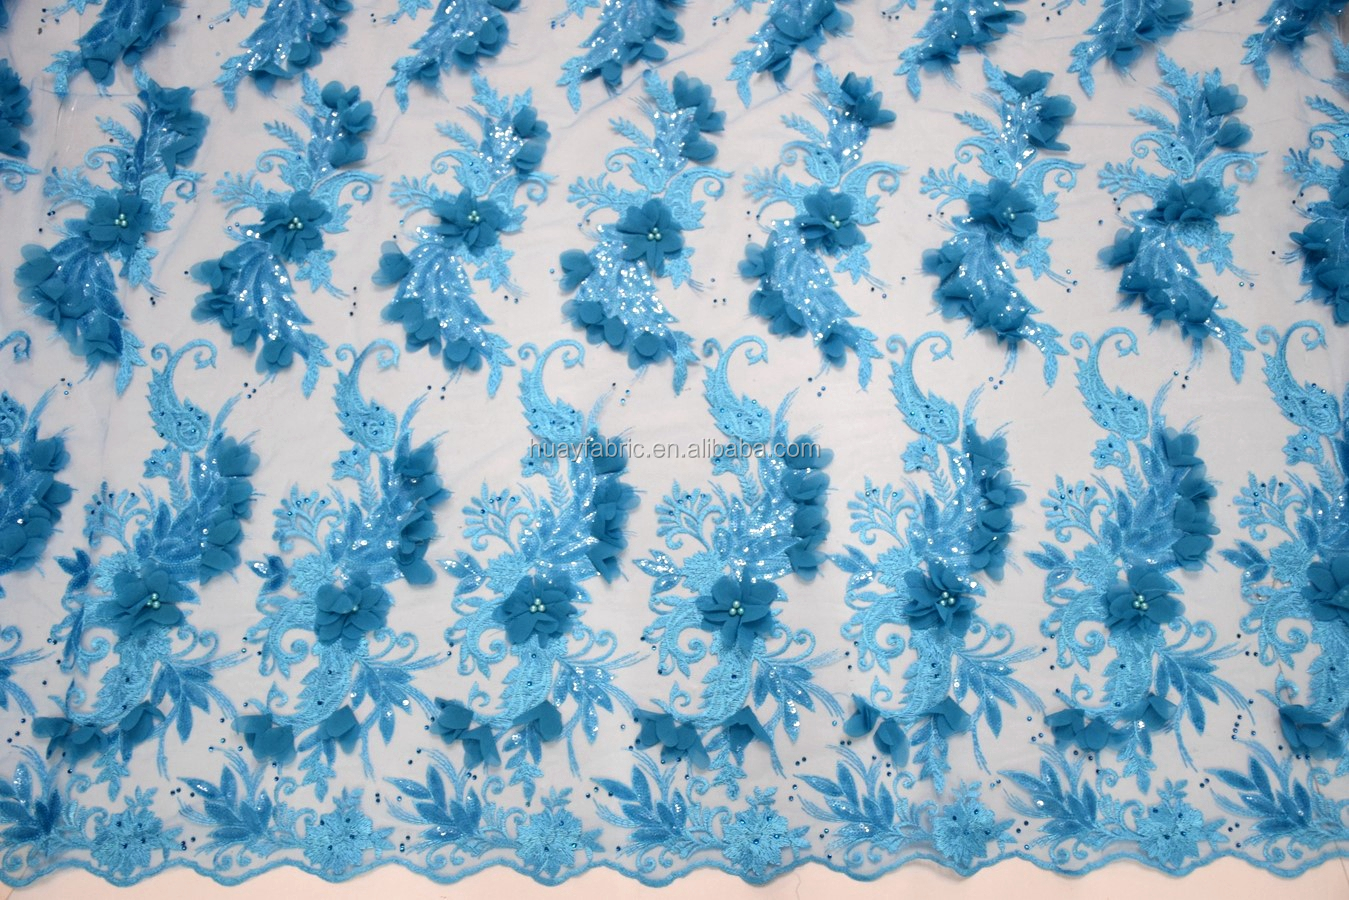 Superb blue 3d flower beaded lace mesh fabric with sequins and pearls stone tulle lace HY0522-8